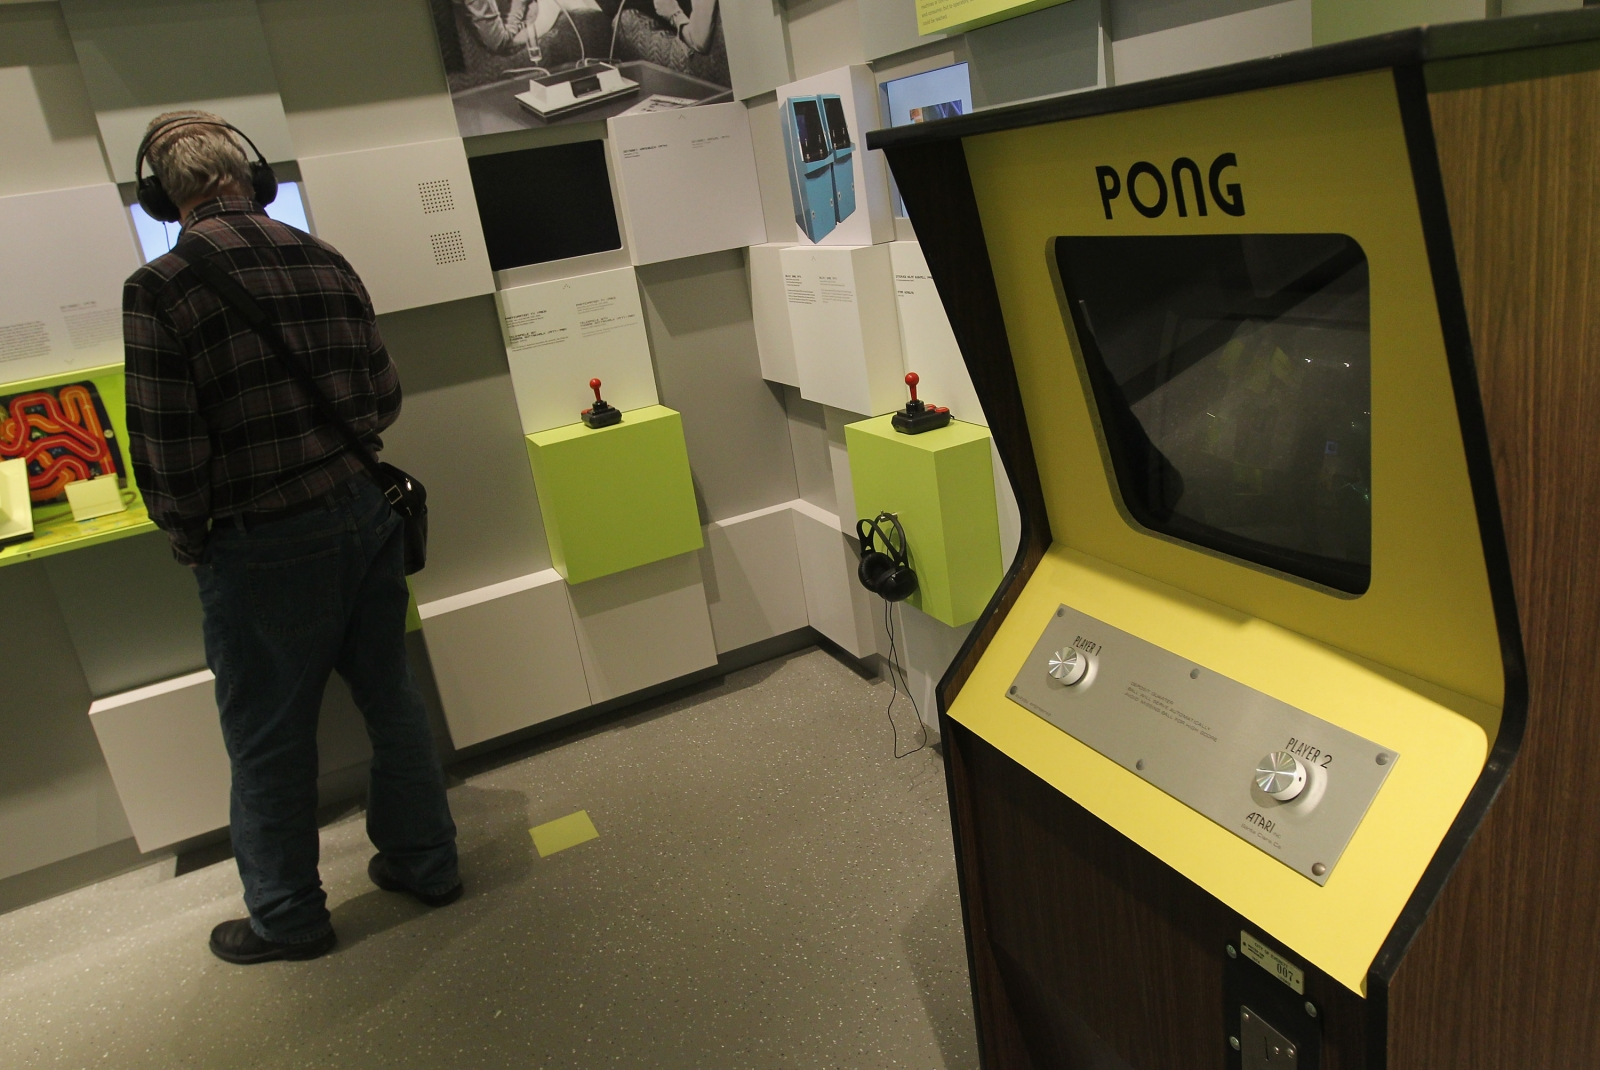 Pong retro games